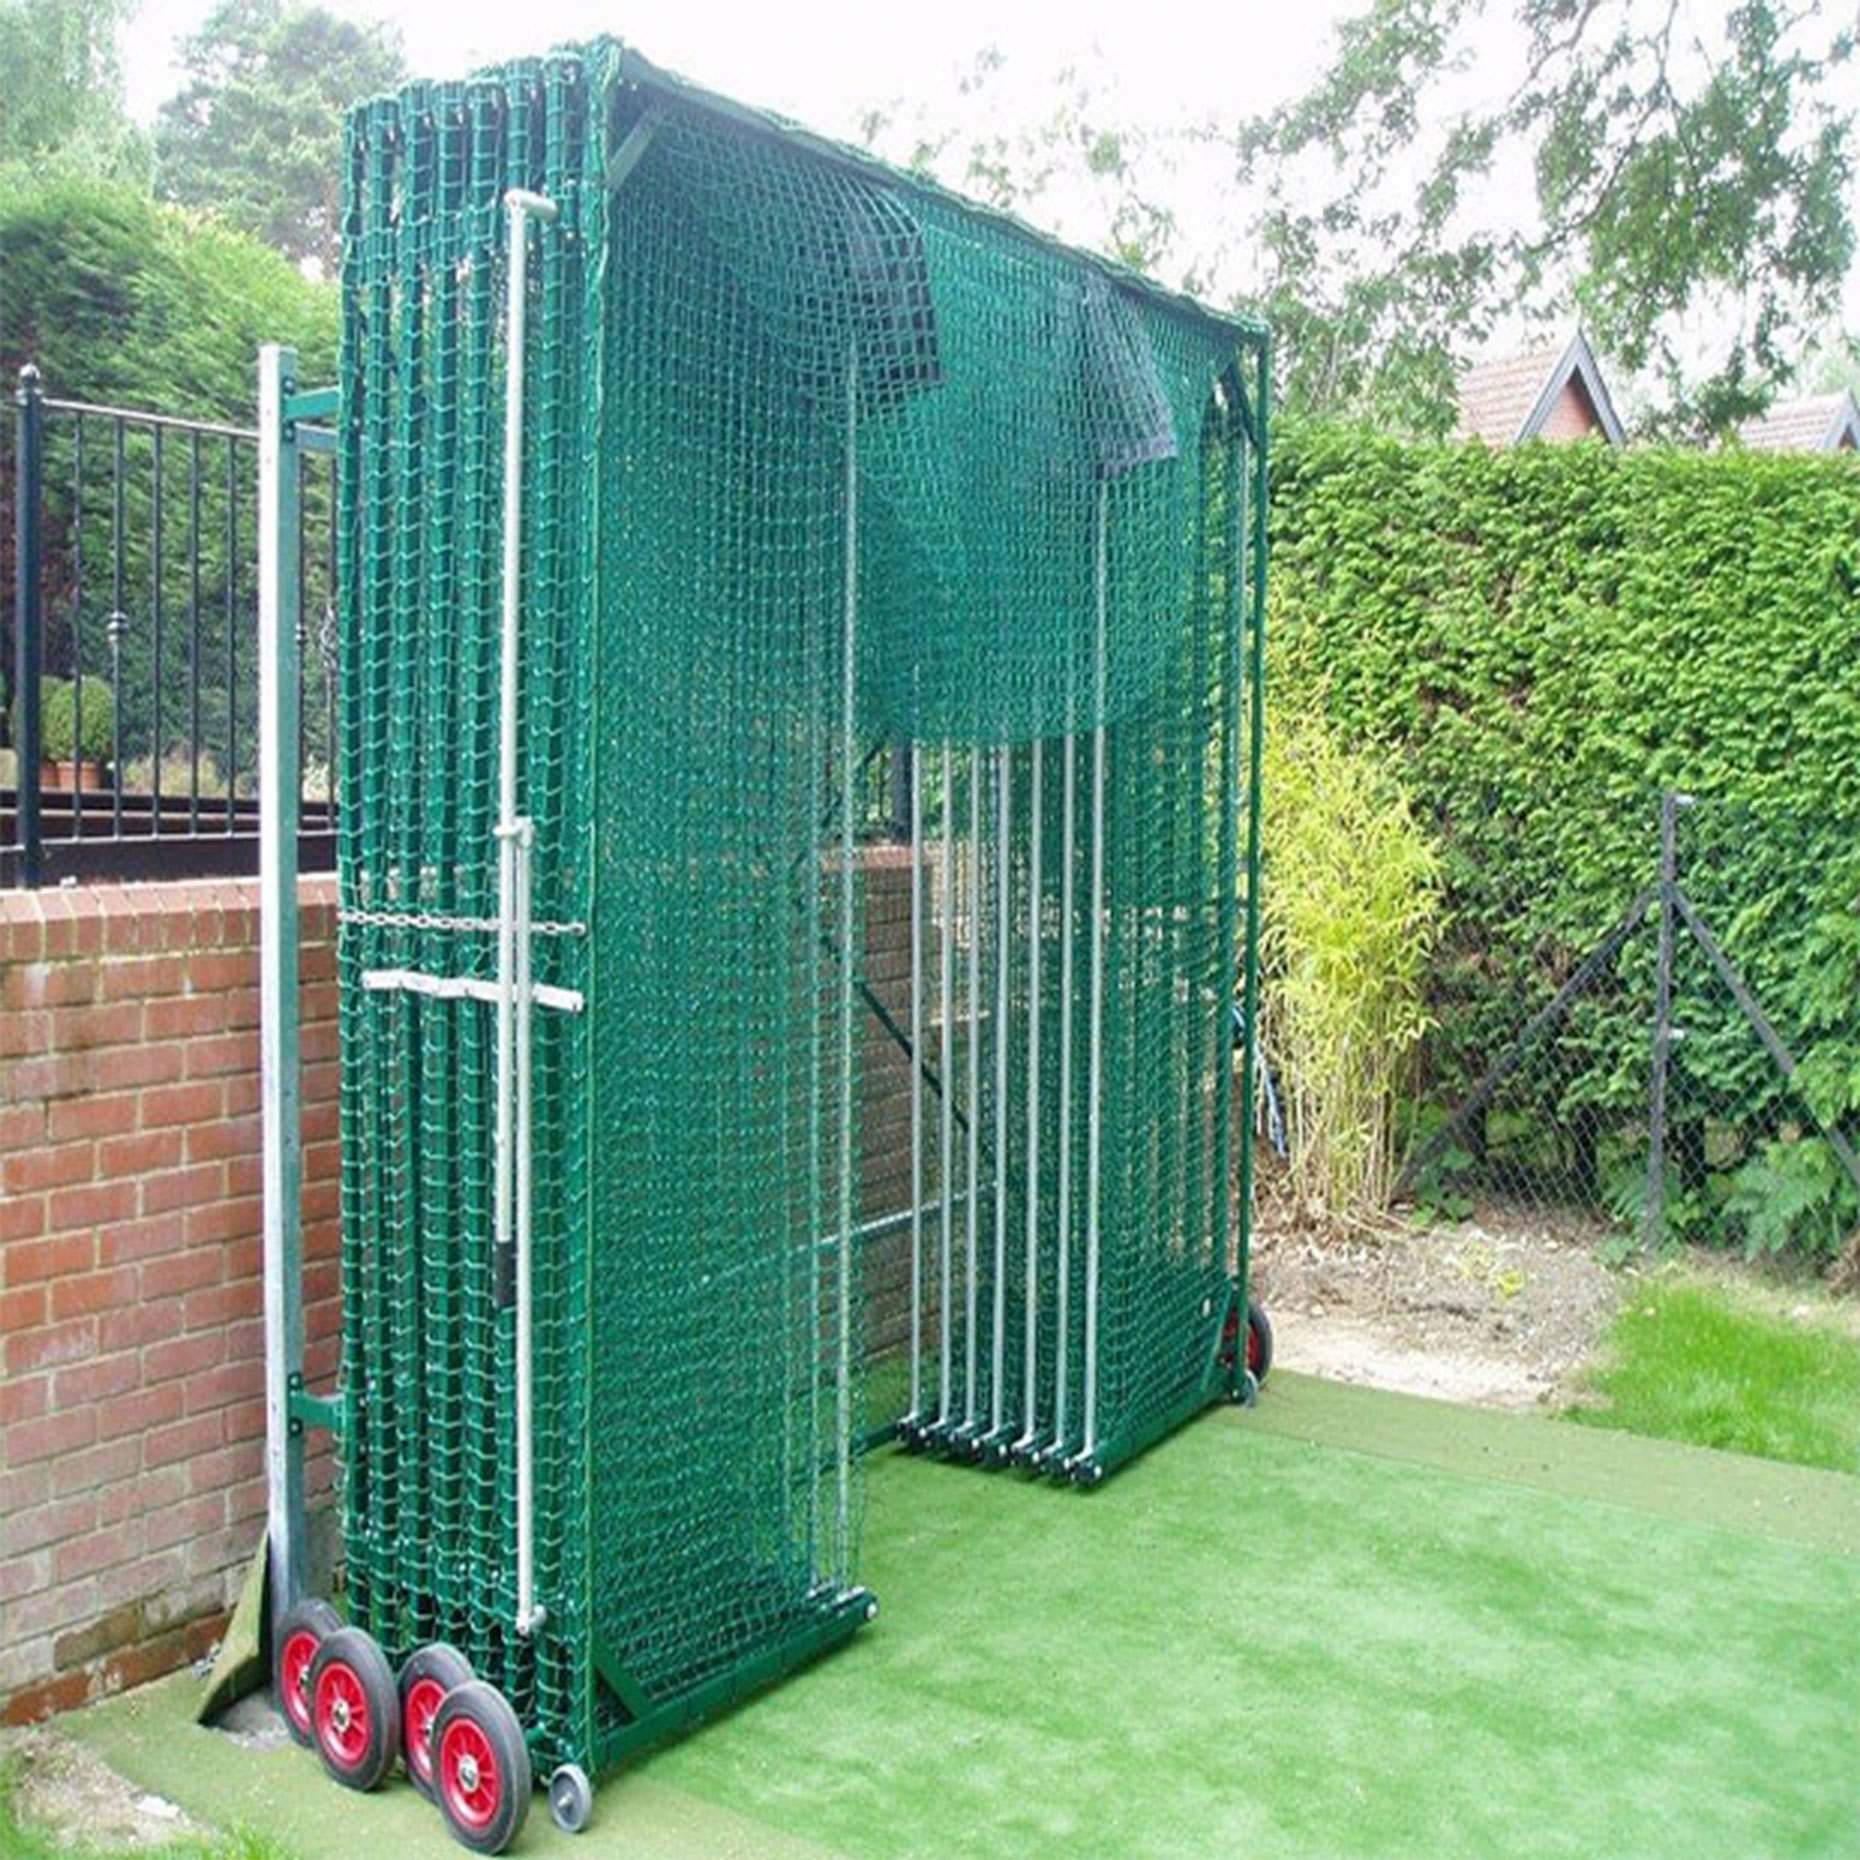 Concertina baseball batting cage />